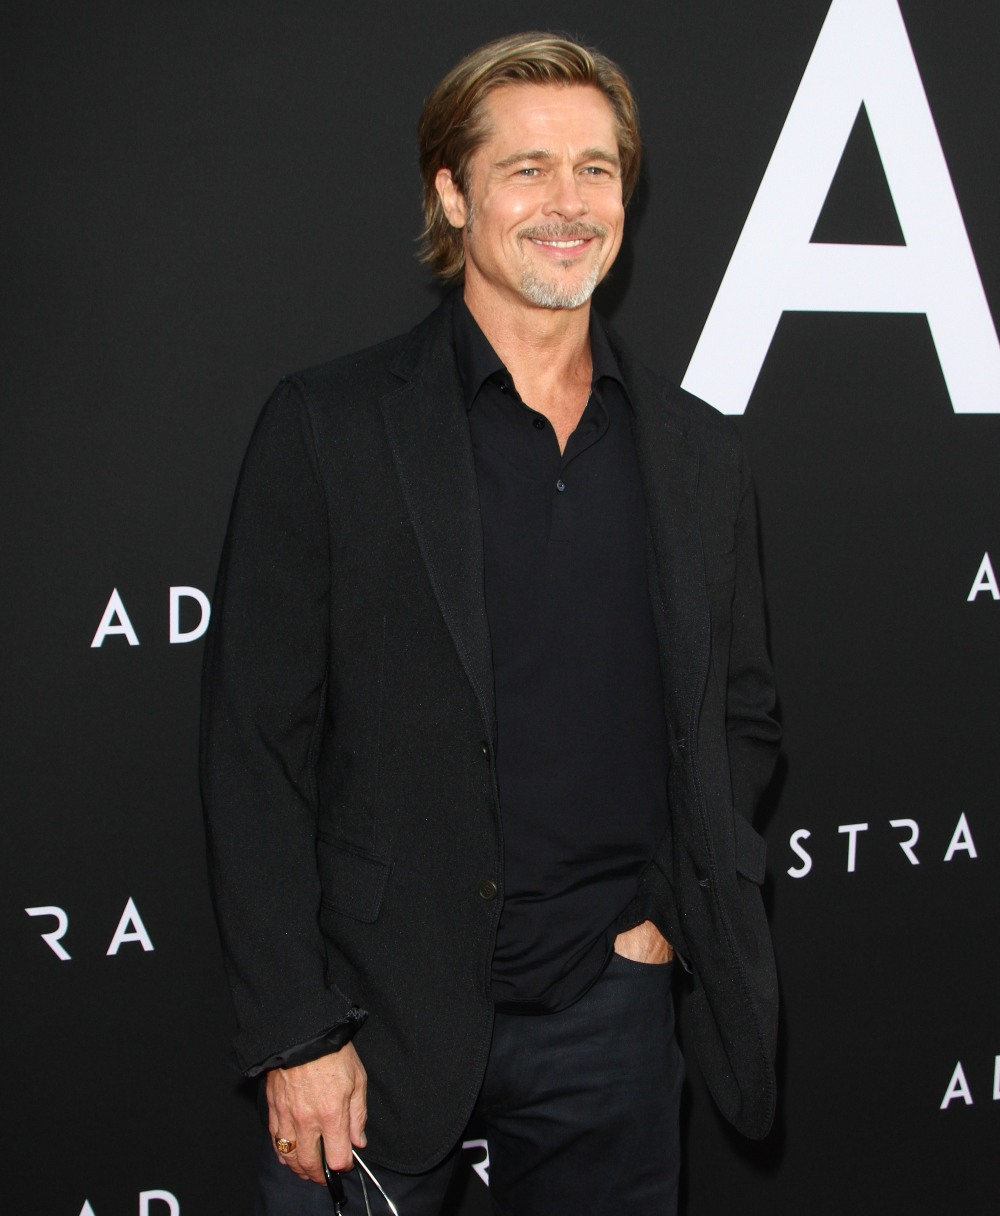 """Brad Pitt attends The premiere of """"Ad Astra"""" in Los Angeles"""